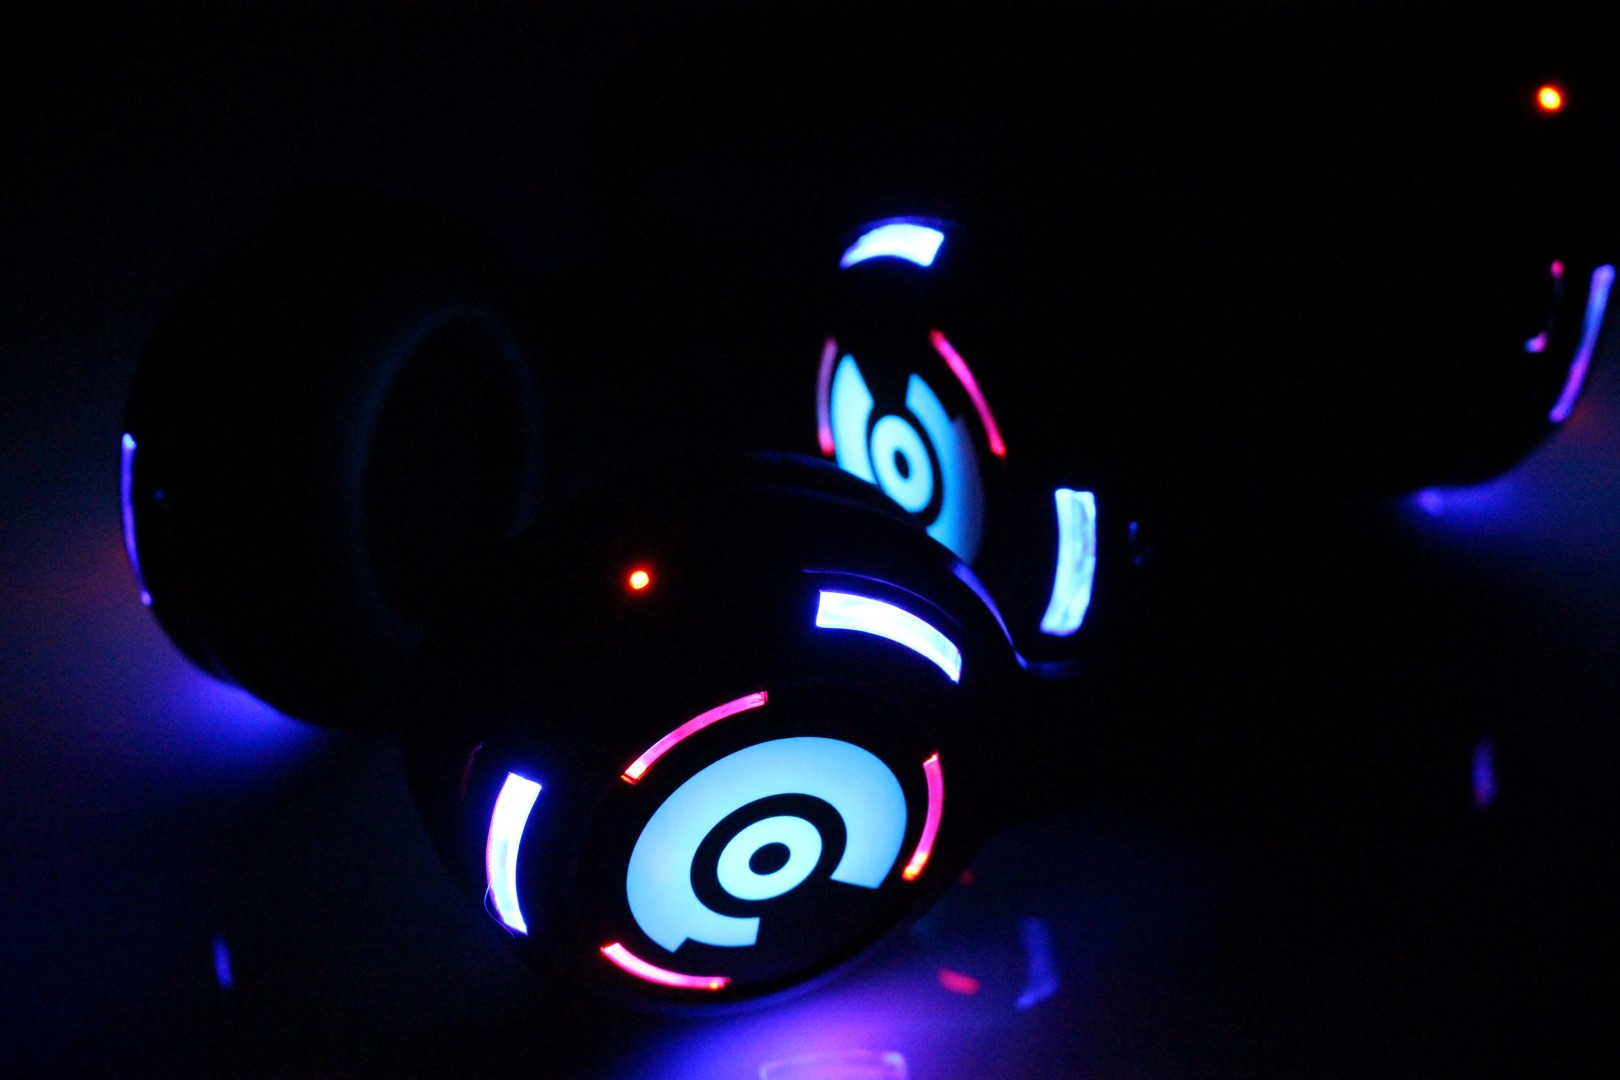 Headphones light up to show channel